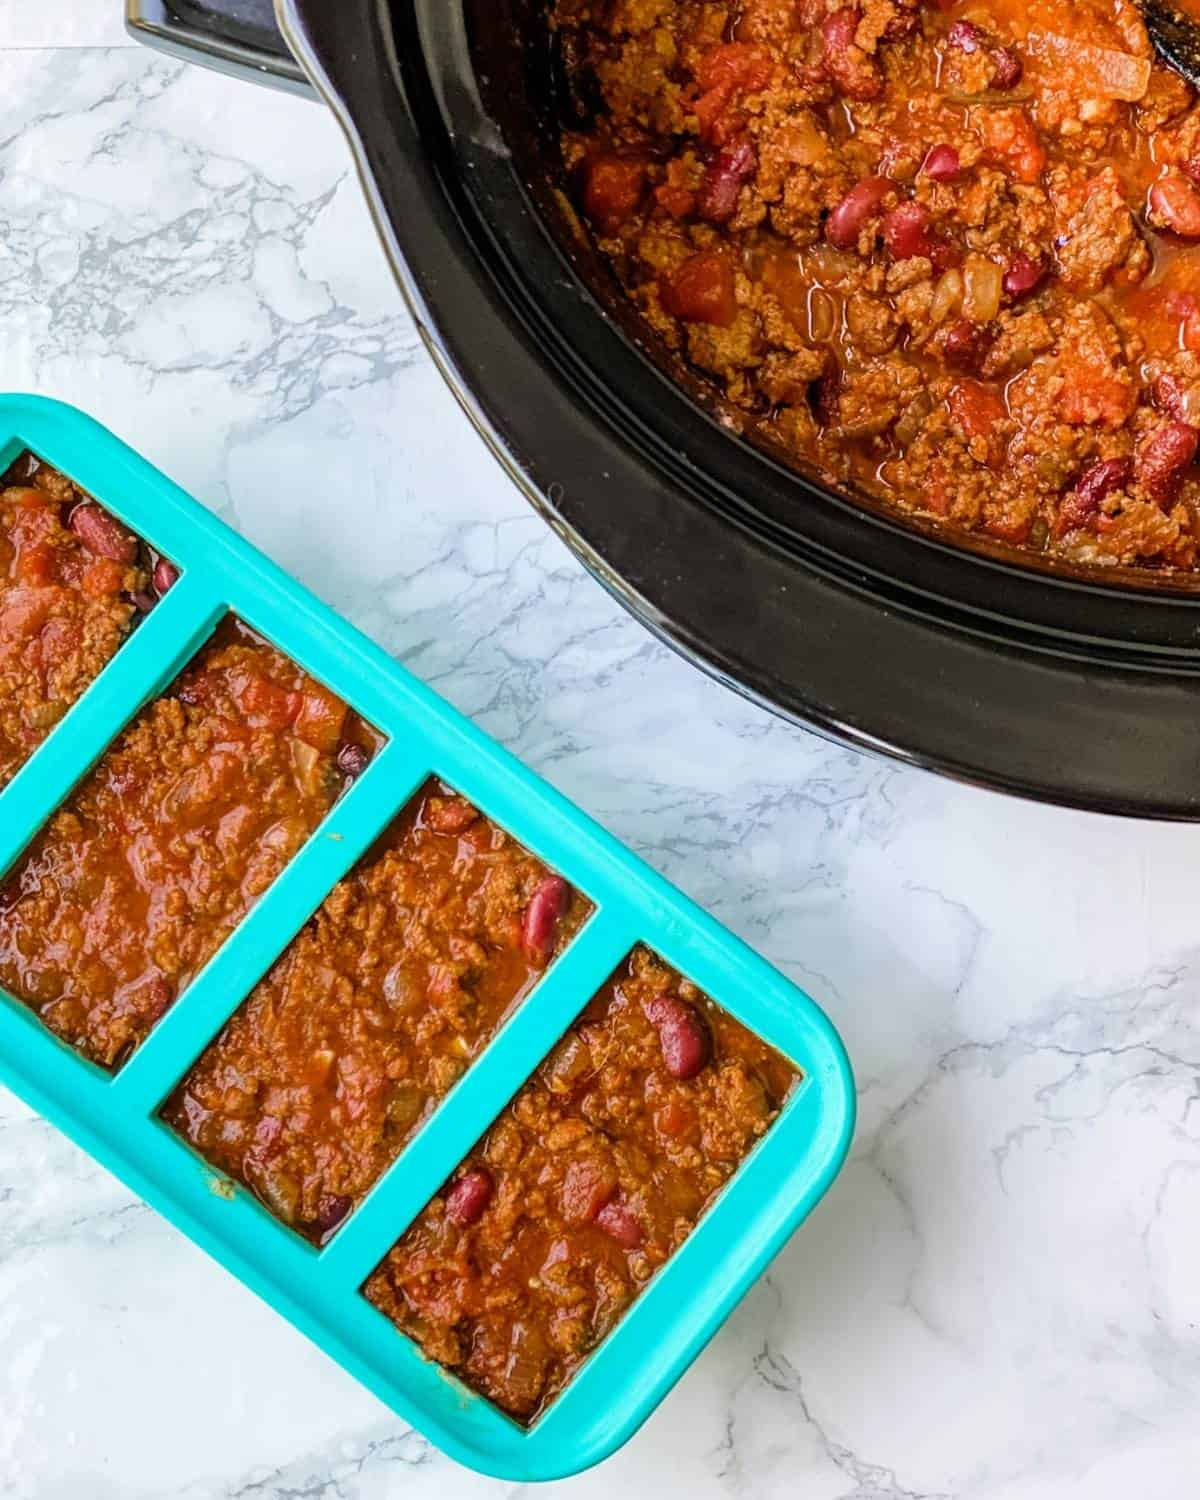 silicone souper cube trays with chili next to a slow cooker of chili